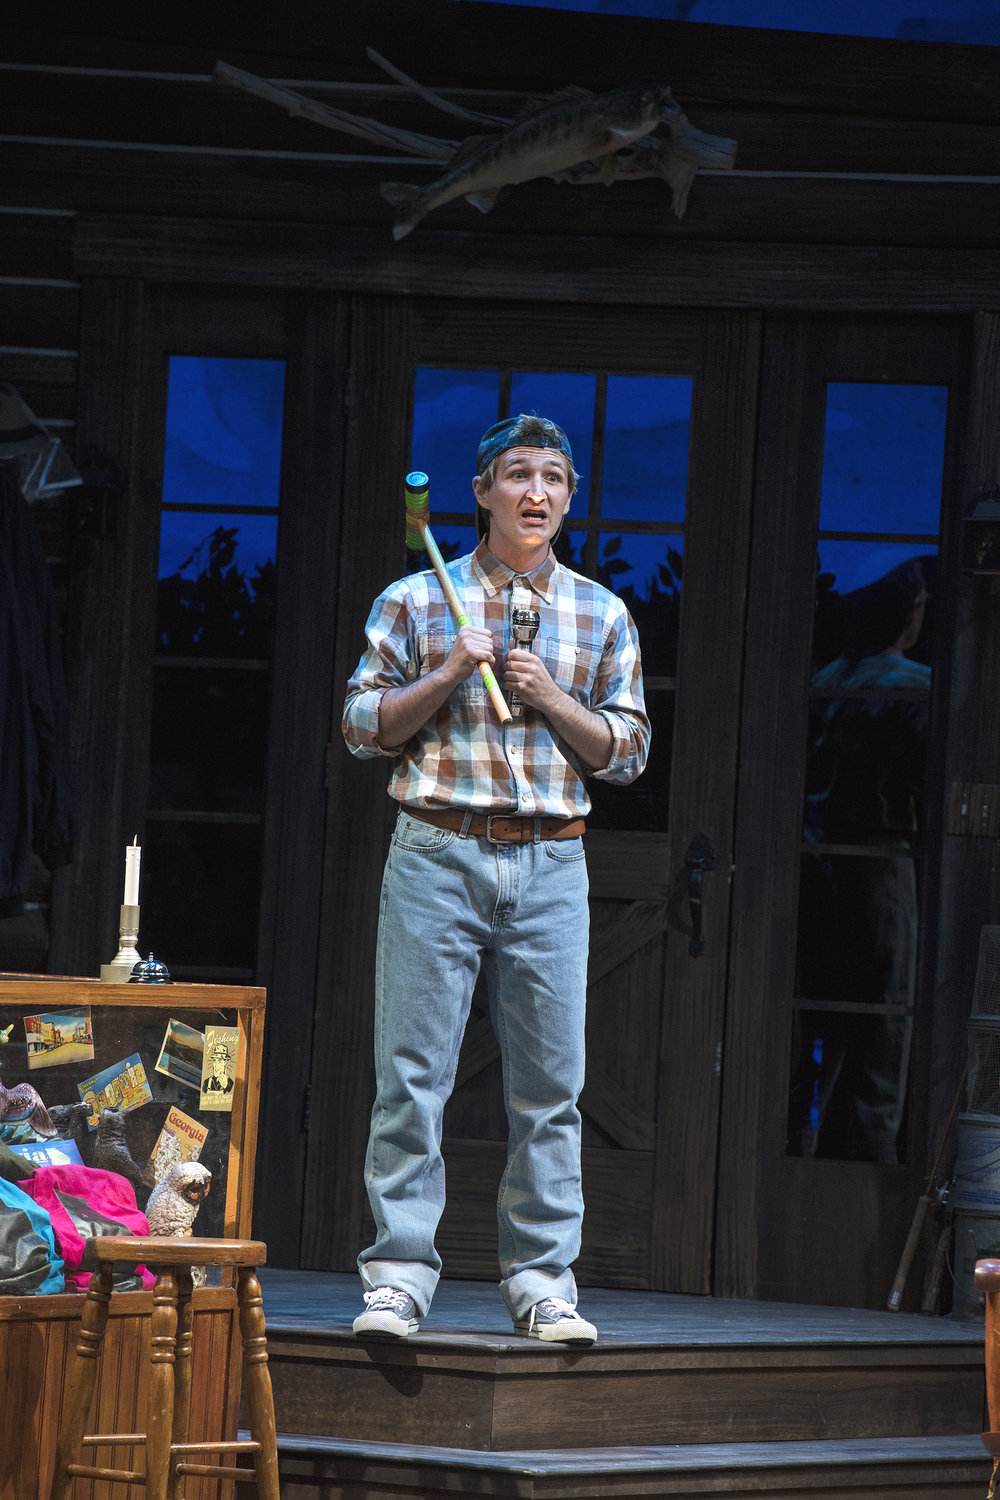 Rob Riordan as Ellard Simms inthe Utah Shakespeare Festival's 2018 production of The Foreigner.  (Photo by Karl Hugh. Copyright Utah Shakespeare Festival 2018.)